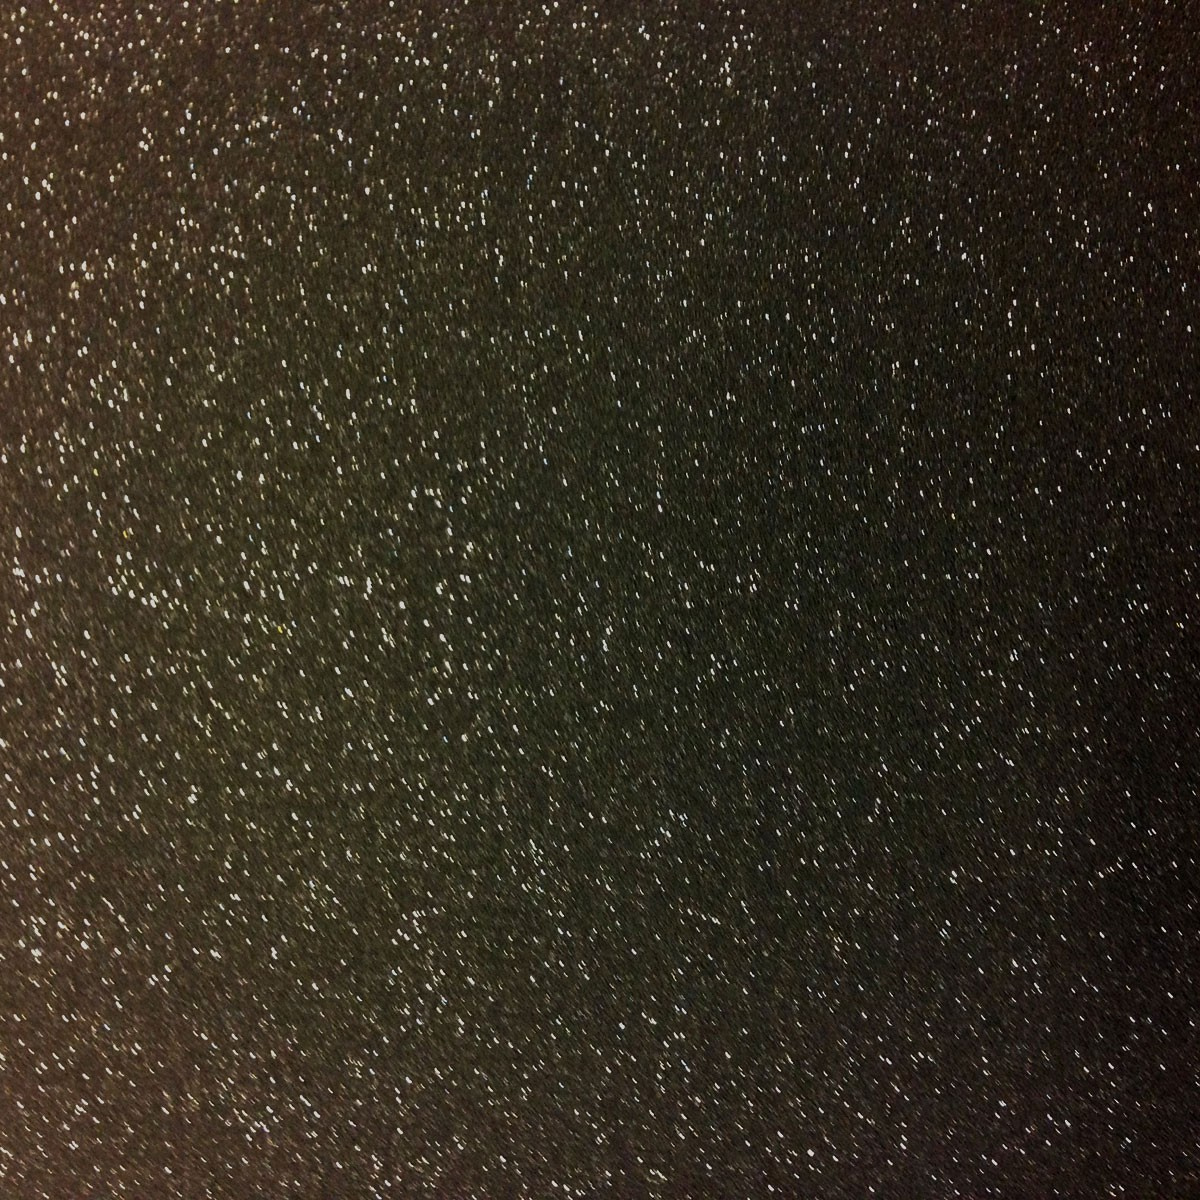 Black and silver glitter wallpaper wallpapersafari for Wallpaper glitter home